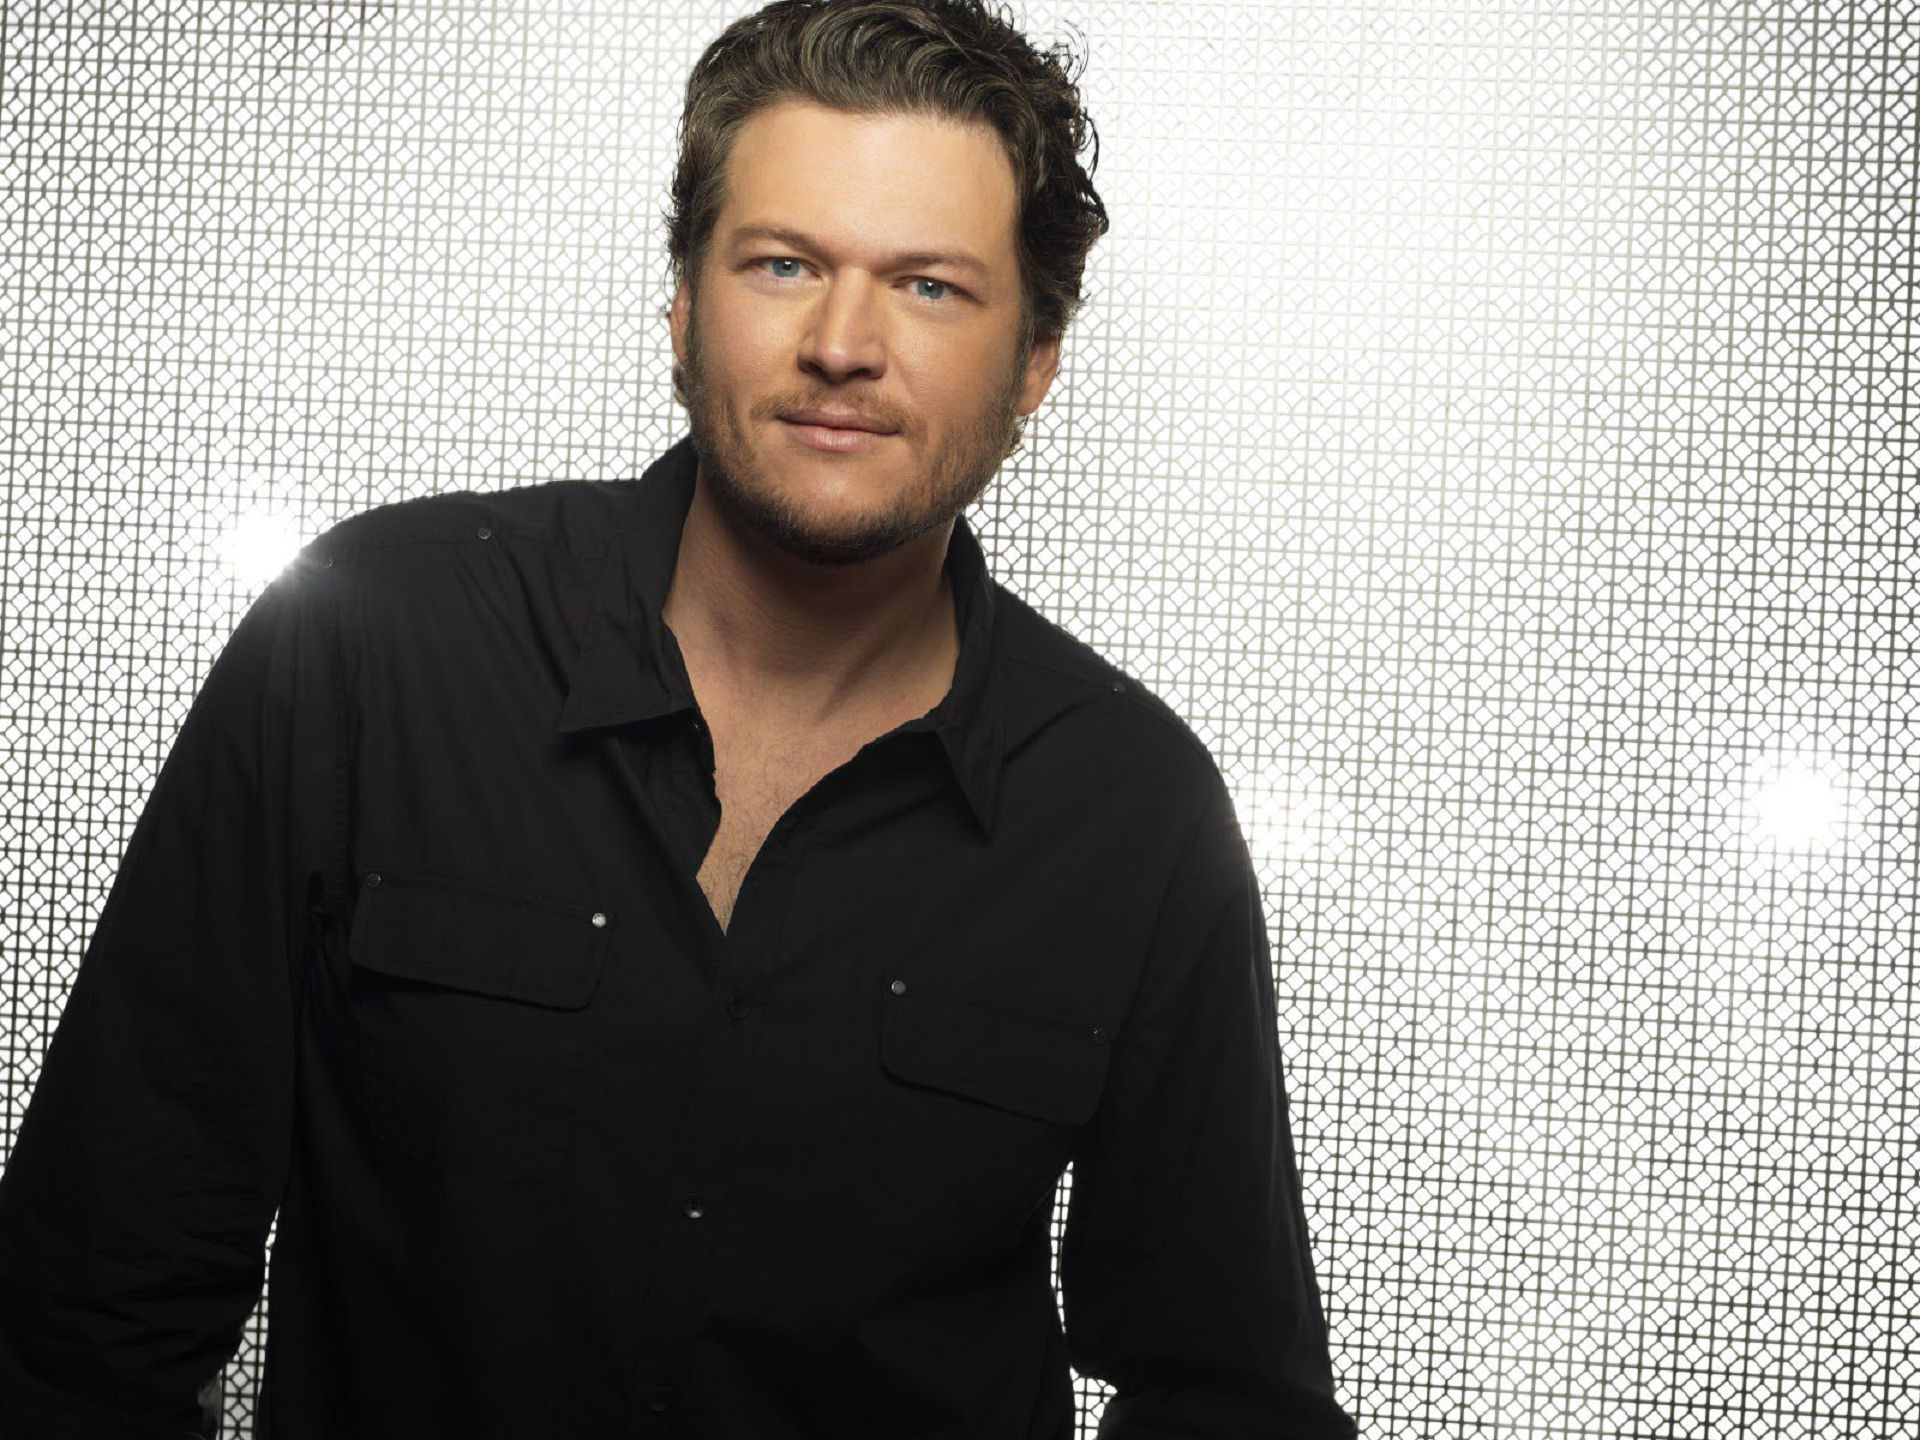 Blake Shelton In High Resolution